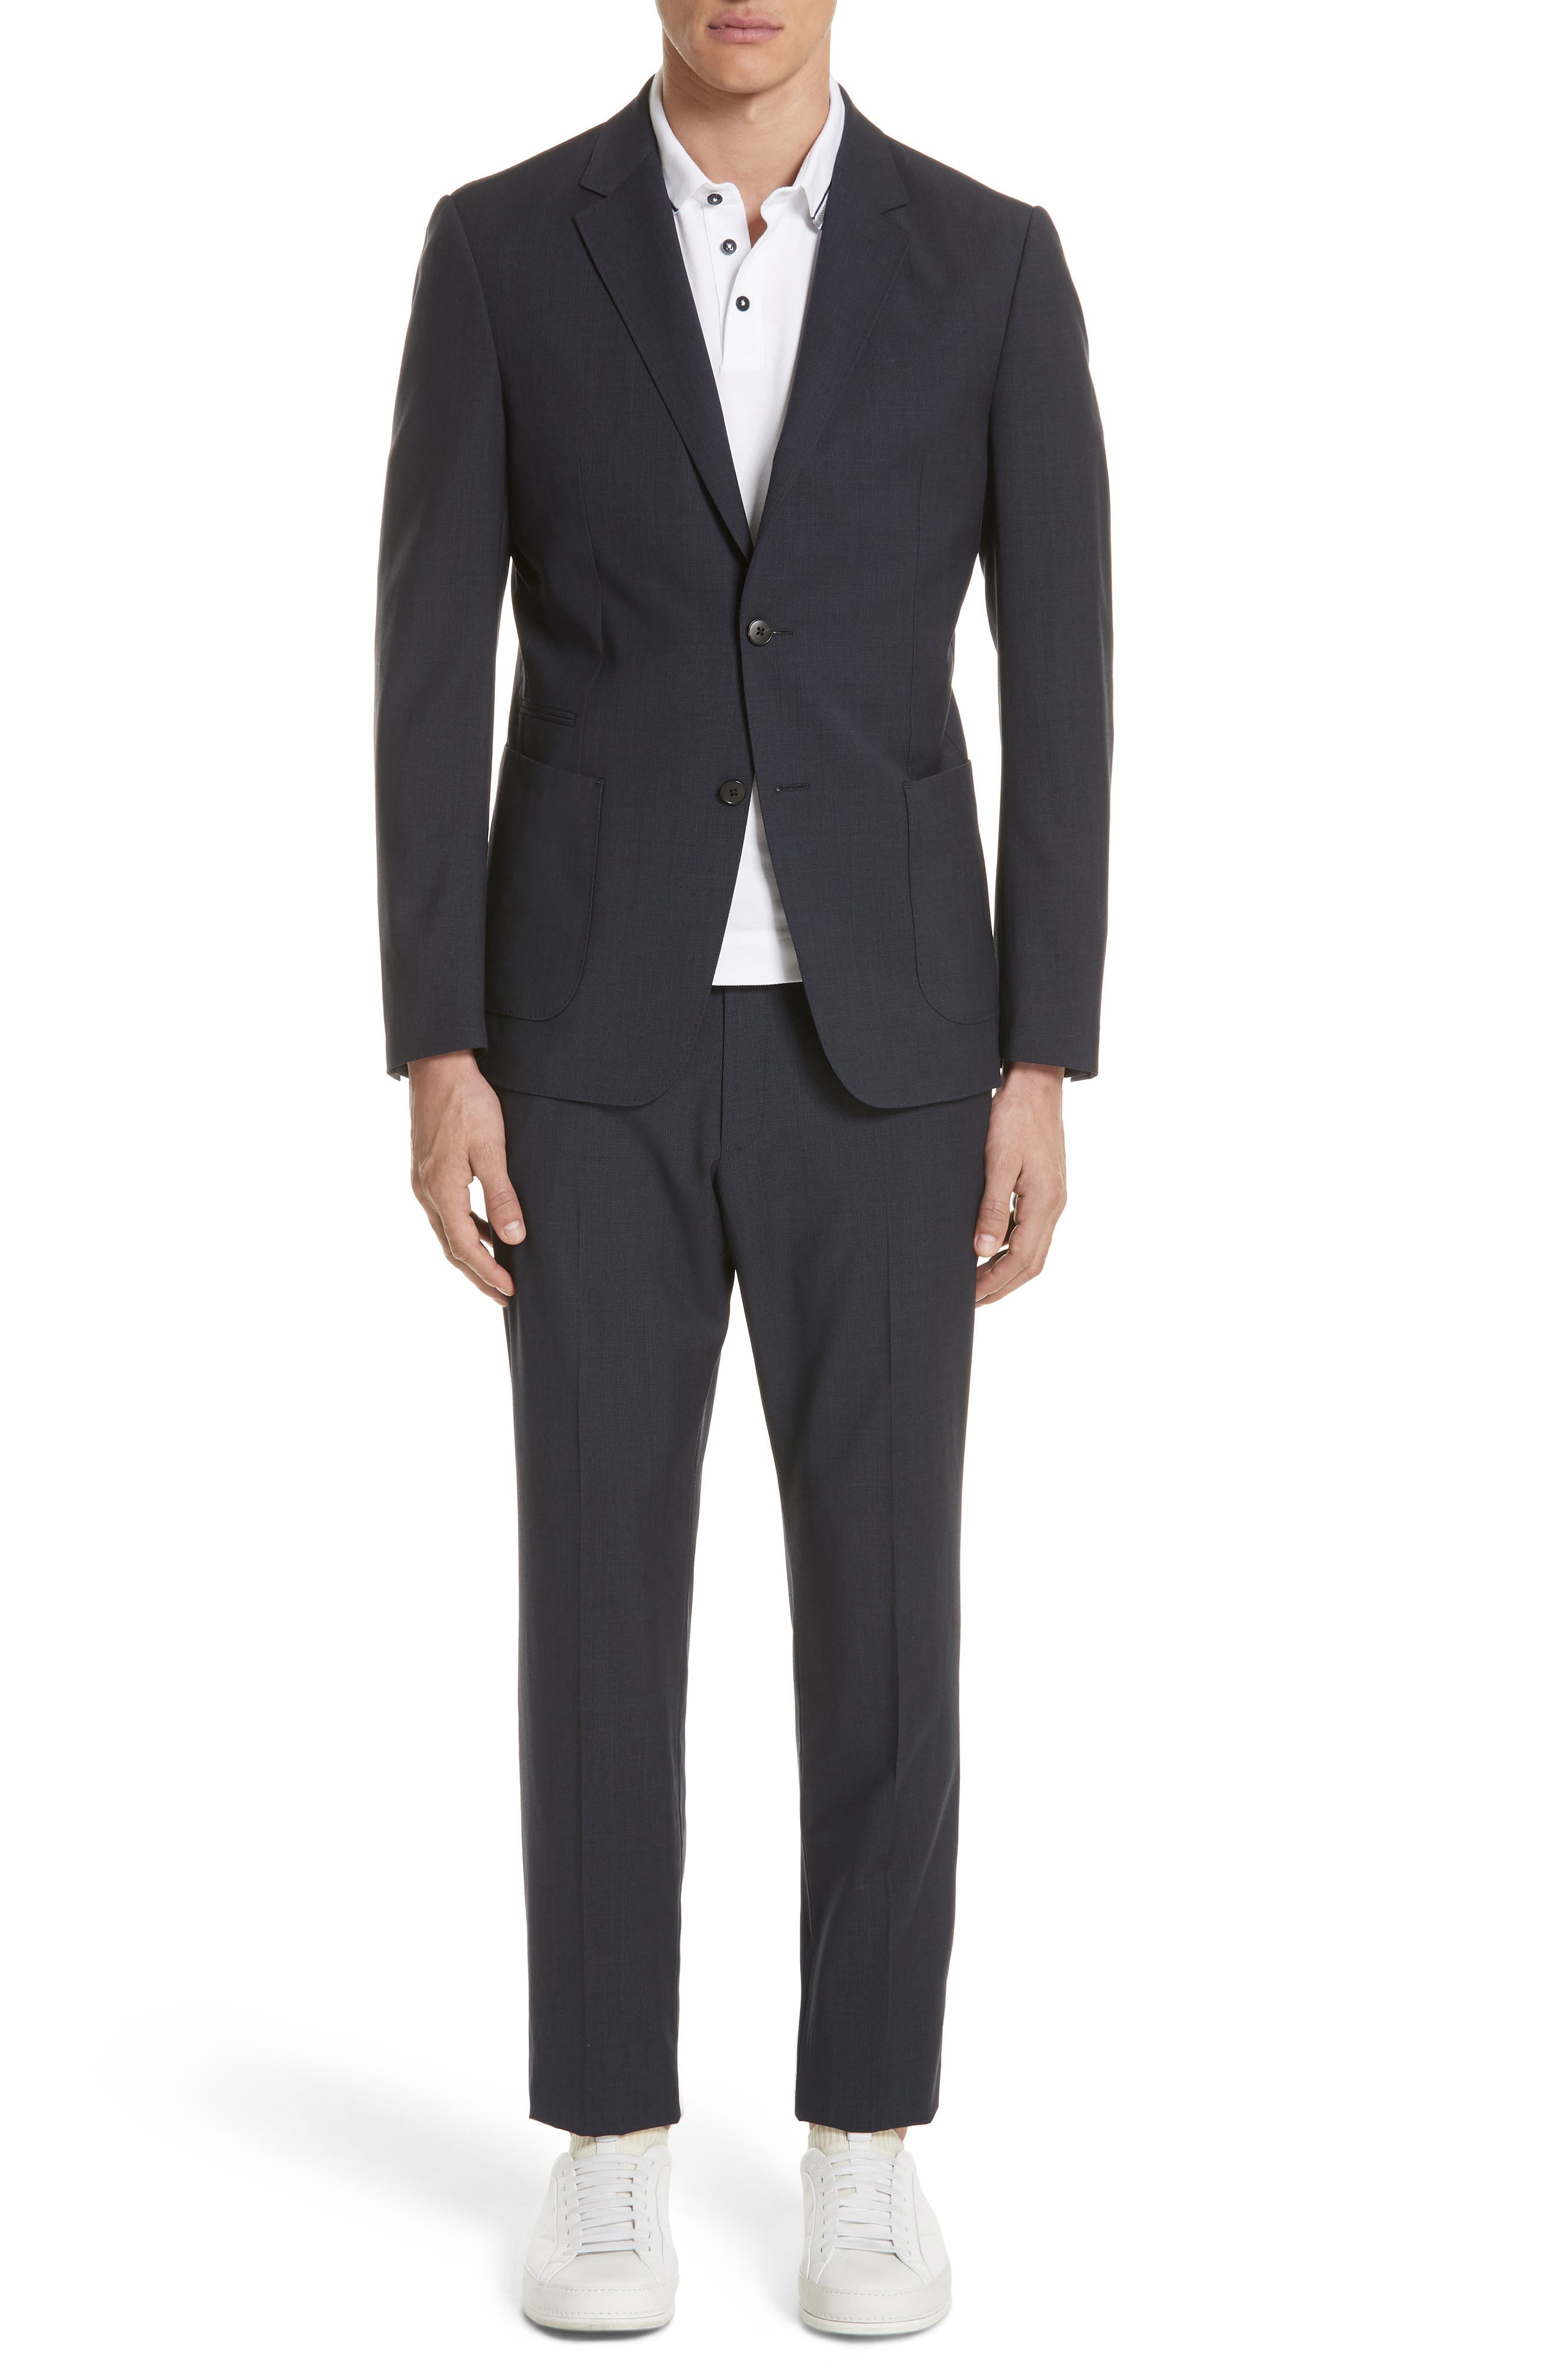 TECHMERINO<sup>™</sup> Wash & Go Trim Fit Solid Wool Suit,                         Main,                         color, Navy Solid